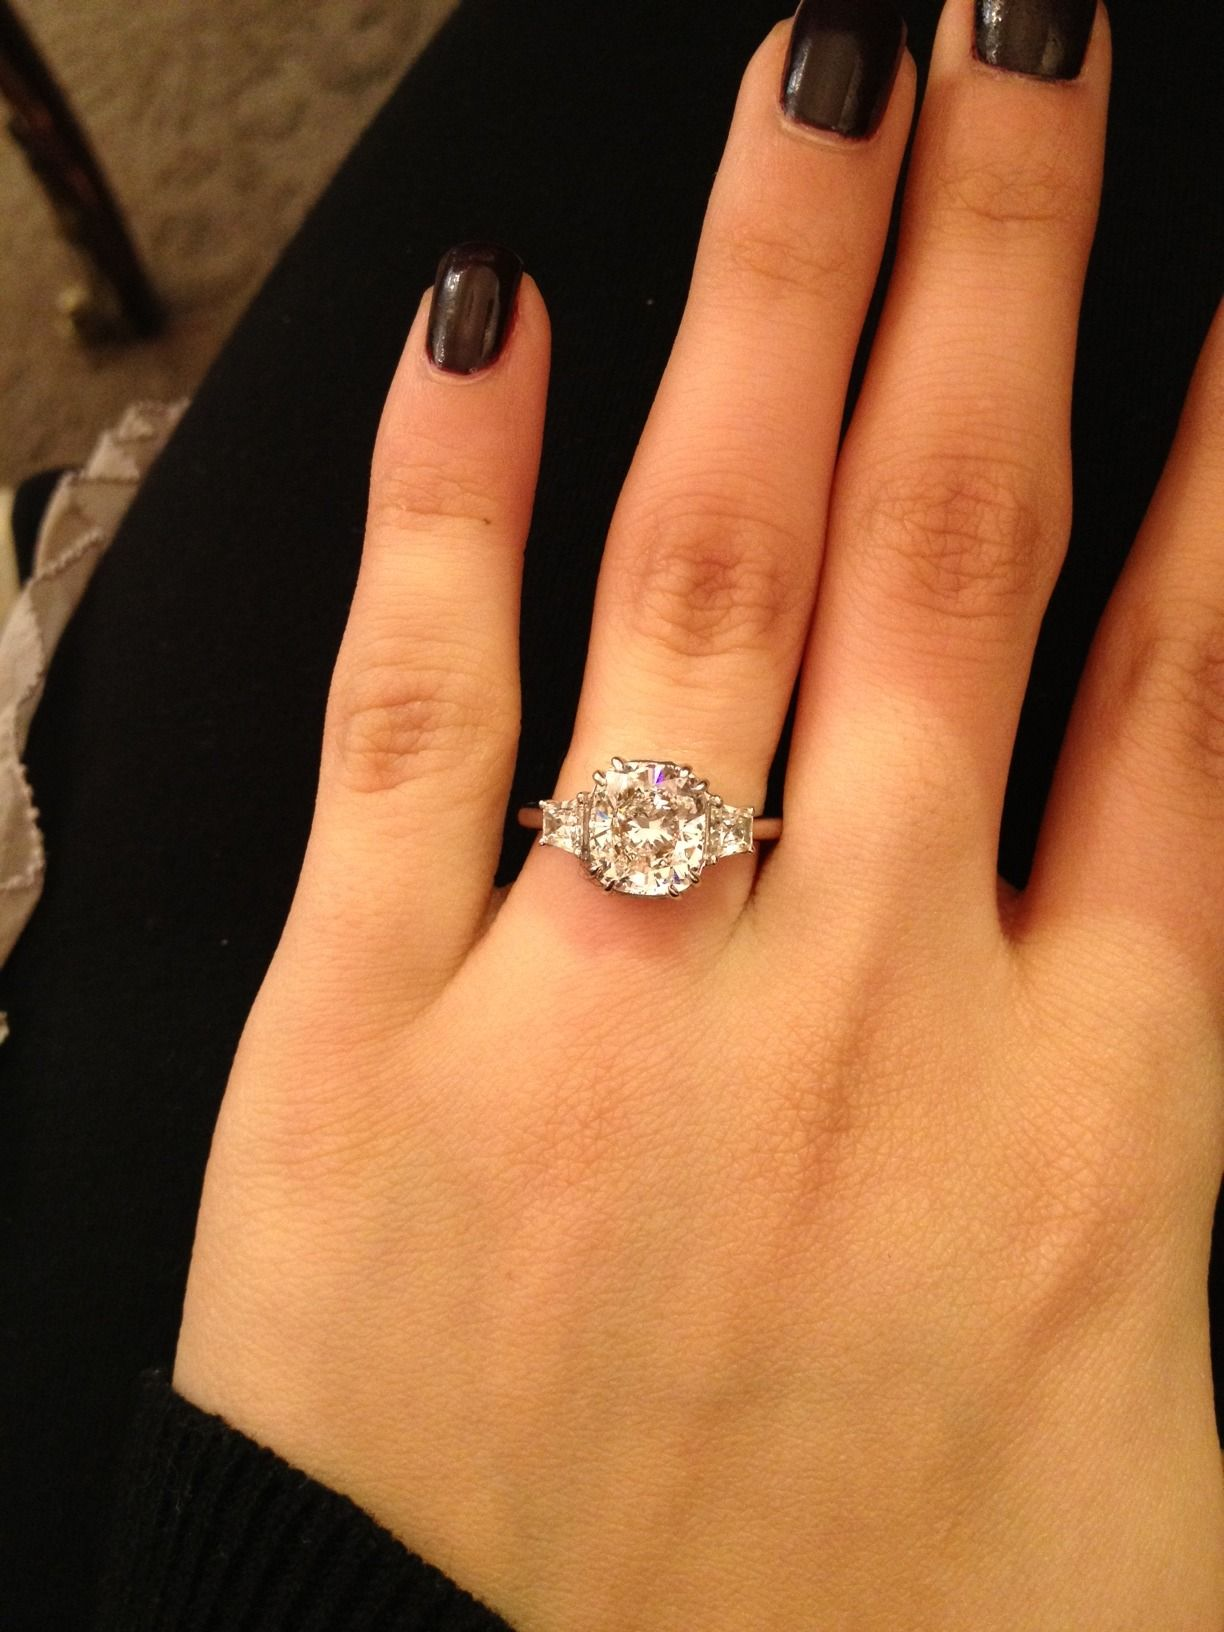 4c0e923e9987f 3 carat, 3 stone diamond engagement ring! So sparkly! | fashion ...